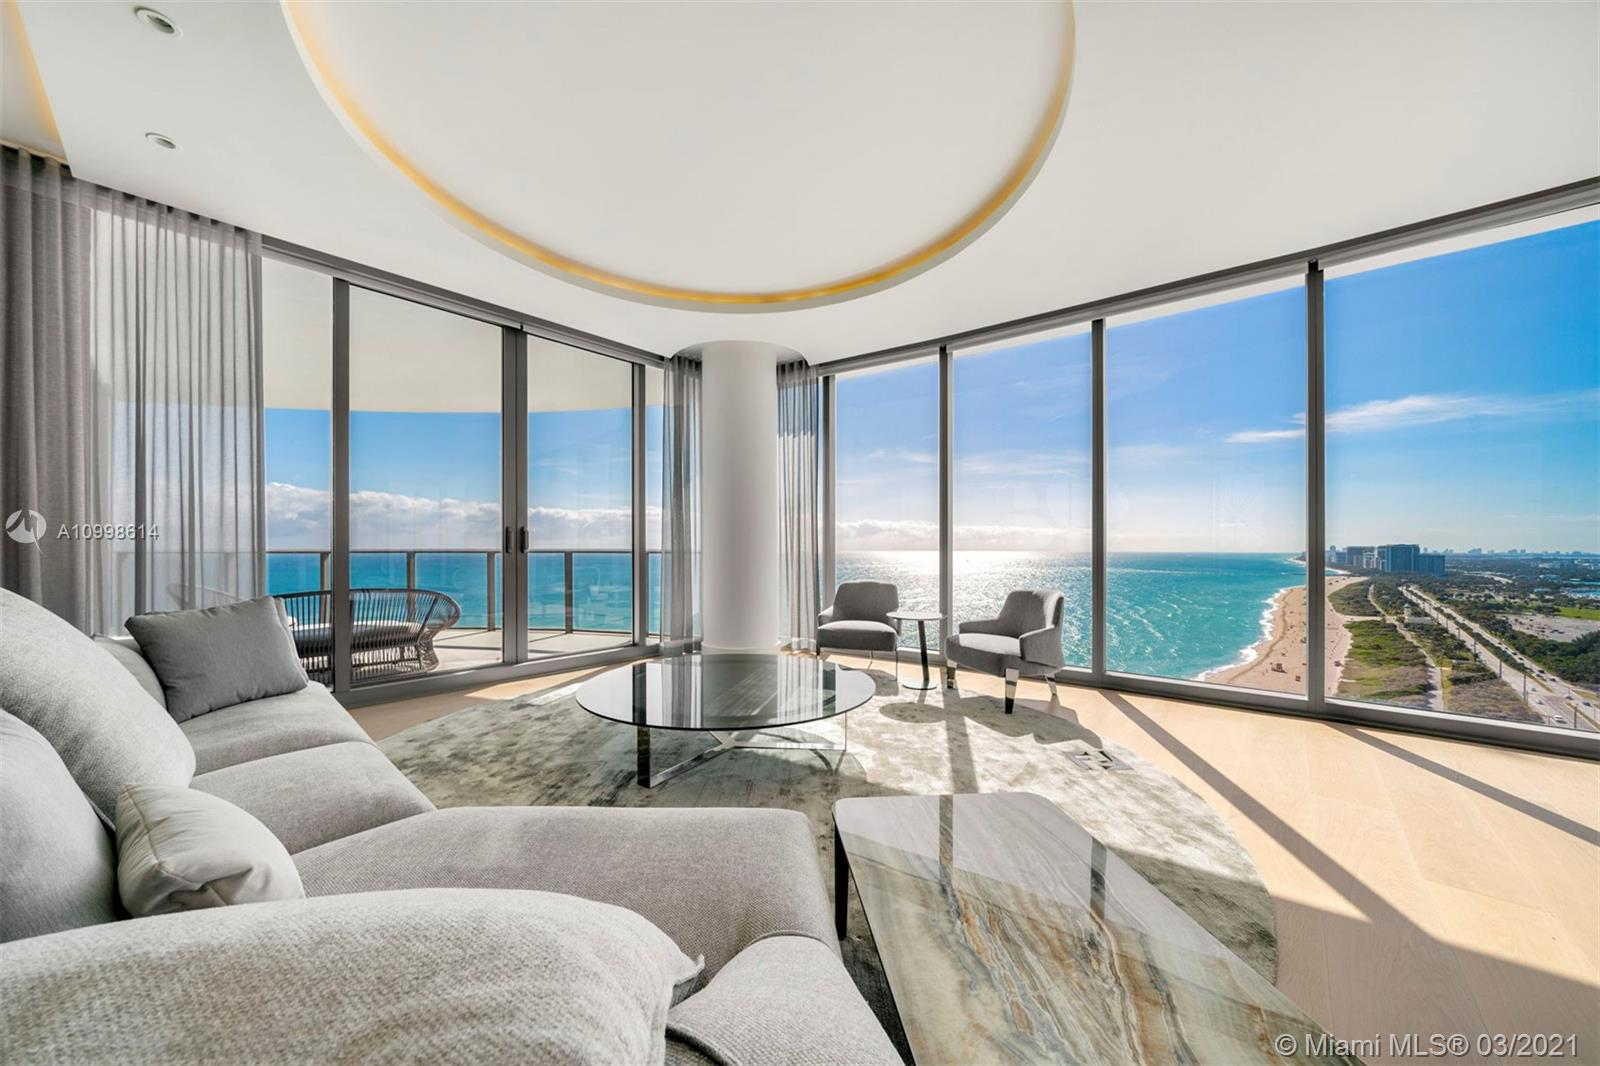 Amazing 4 bed, 5.5 bath unit with spectacular views of all of Miami Beach and Downtown. Unit is complete with family room, Snaidero kitchen, Gaggenau appliances, private elevator foyer, and service quarters to name a few. Beautiful fully furnished unit that wraps around the entire south side and offers 270 degrees of breathtaking panoramic views of the Atlantic Ocean, Miami skyline, Bay & Intracoastal. Designed by world renowned architectural firm Arquitectonica. Amenities include: concierge, valet, restaurant & room service, beach & pool services, 2 swimming pools, hot tub, movie theater, oceanfront gym and Spa, wine lounge, game room, 8 guest suites, complimentary continental breakfast every day and much more.